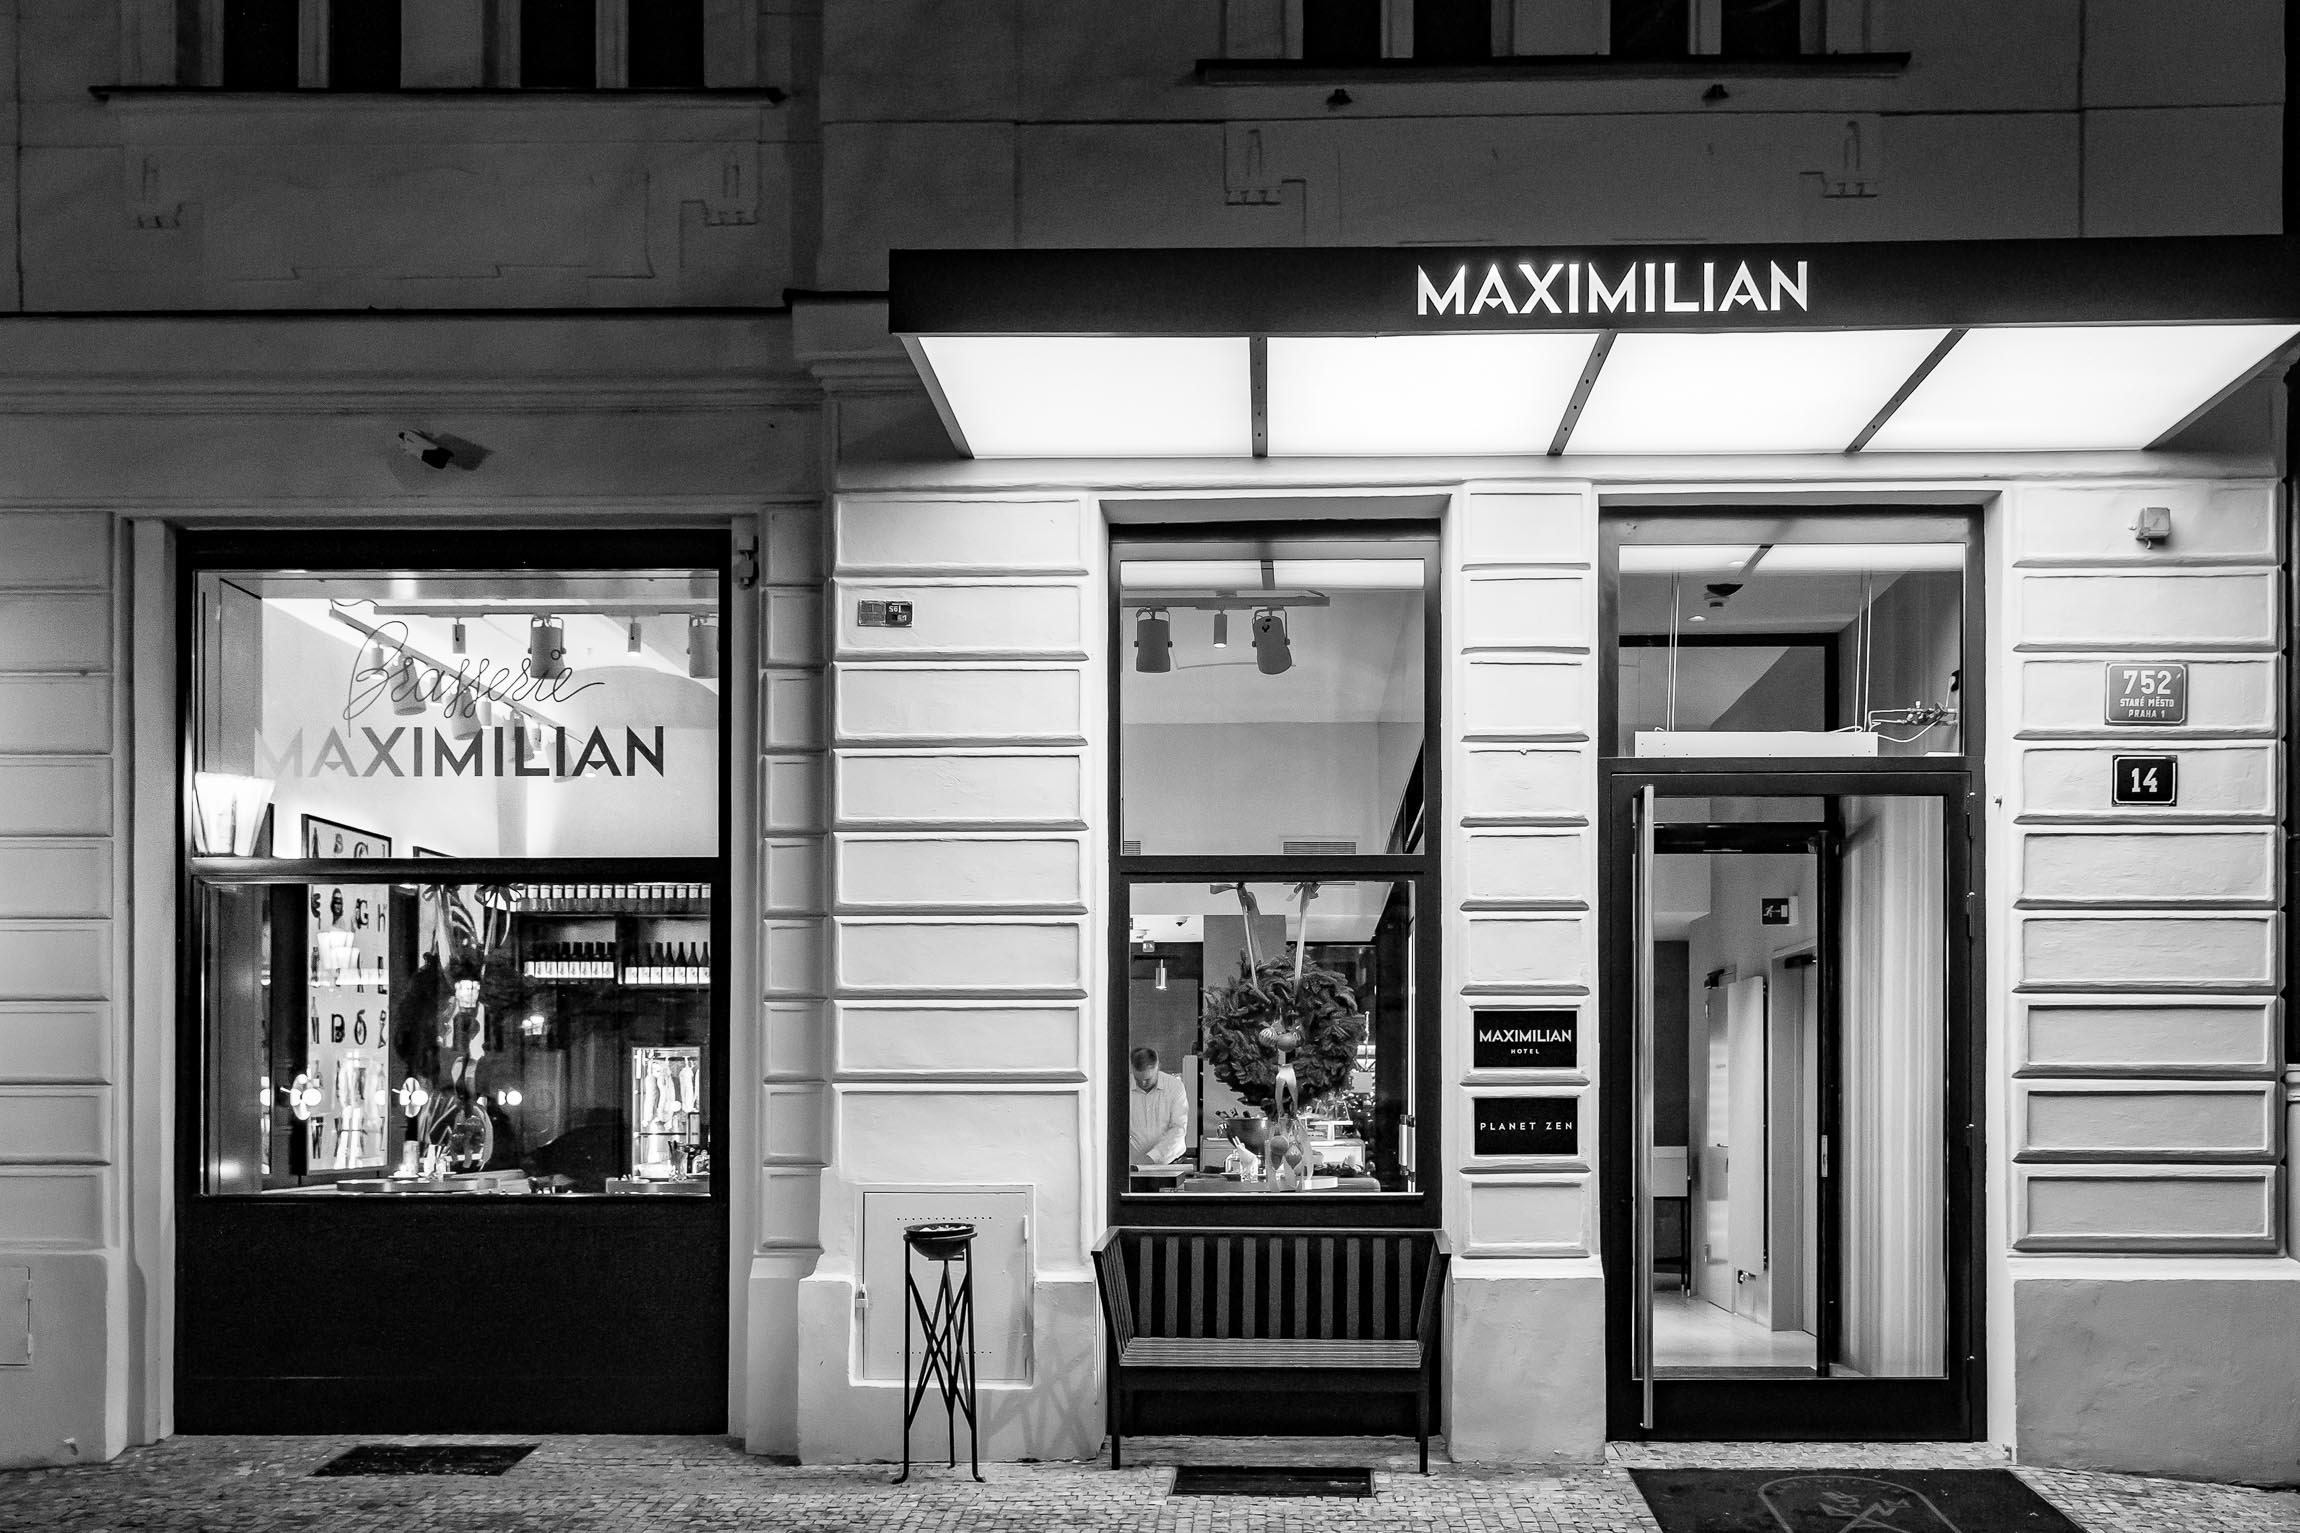 Hotel-Maximilian-Prag-Photo-Simonis-2